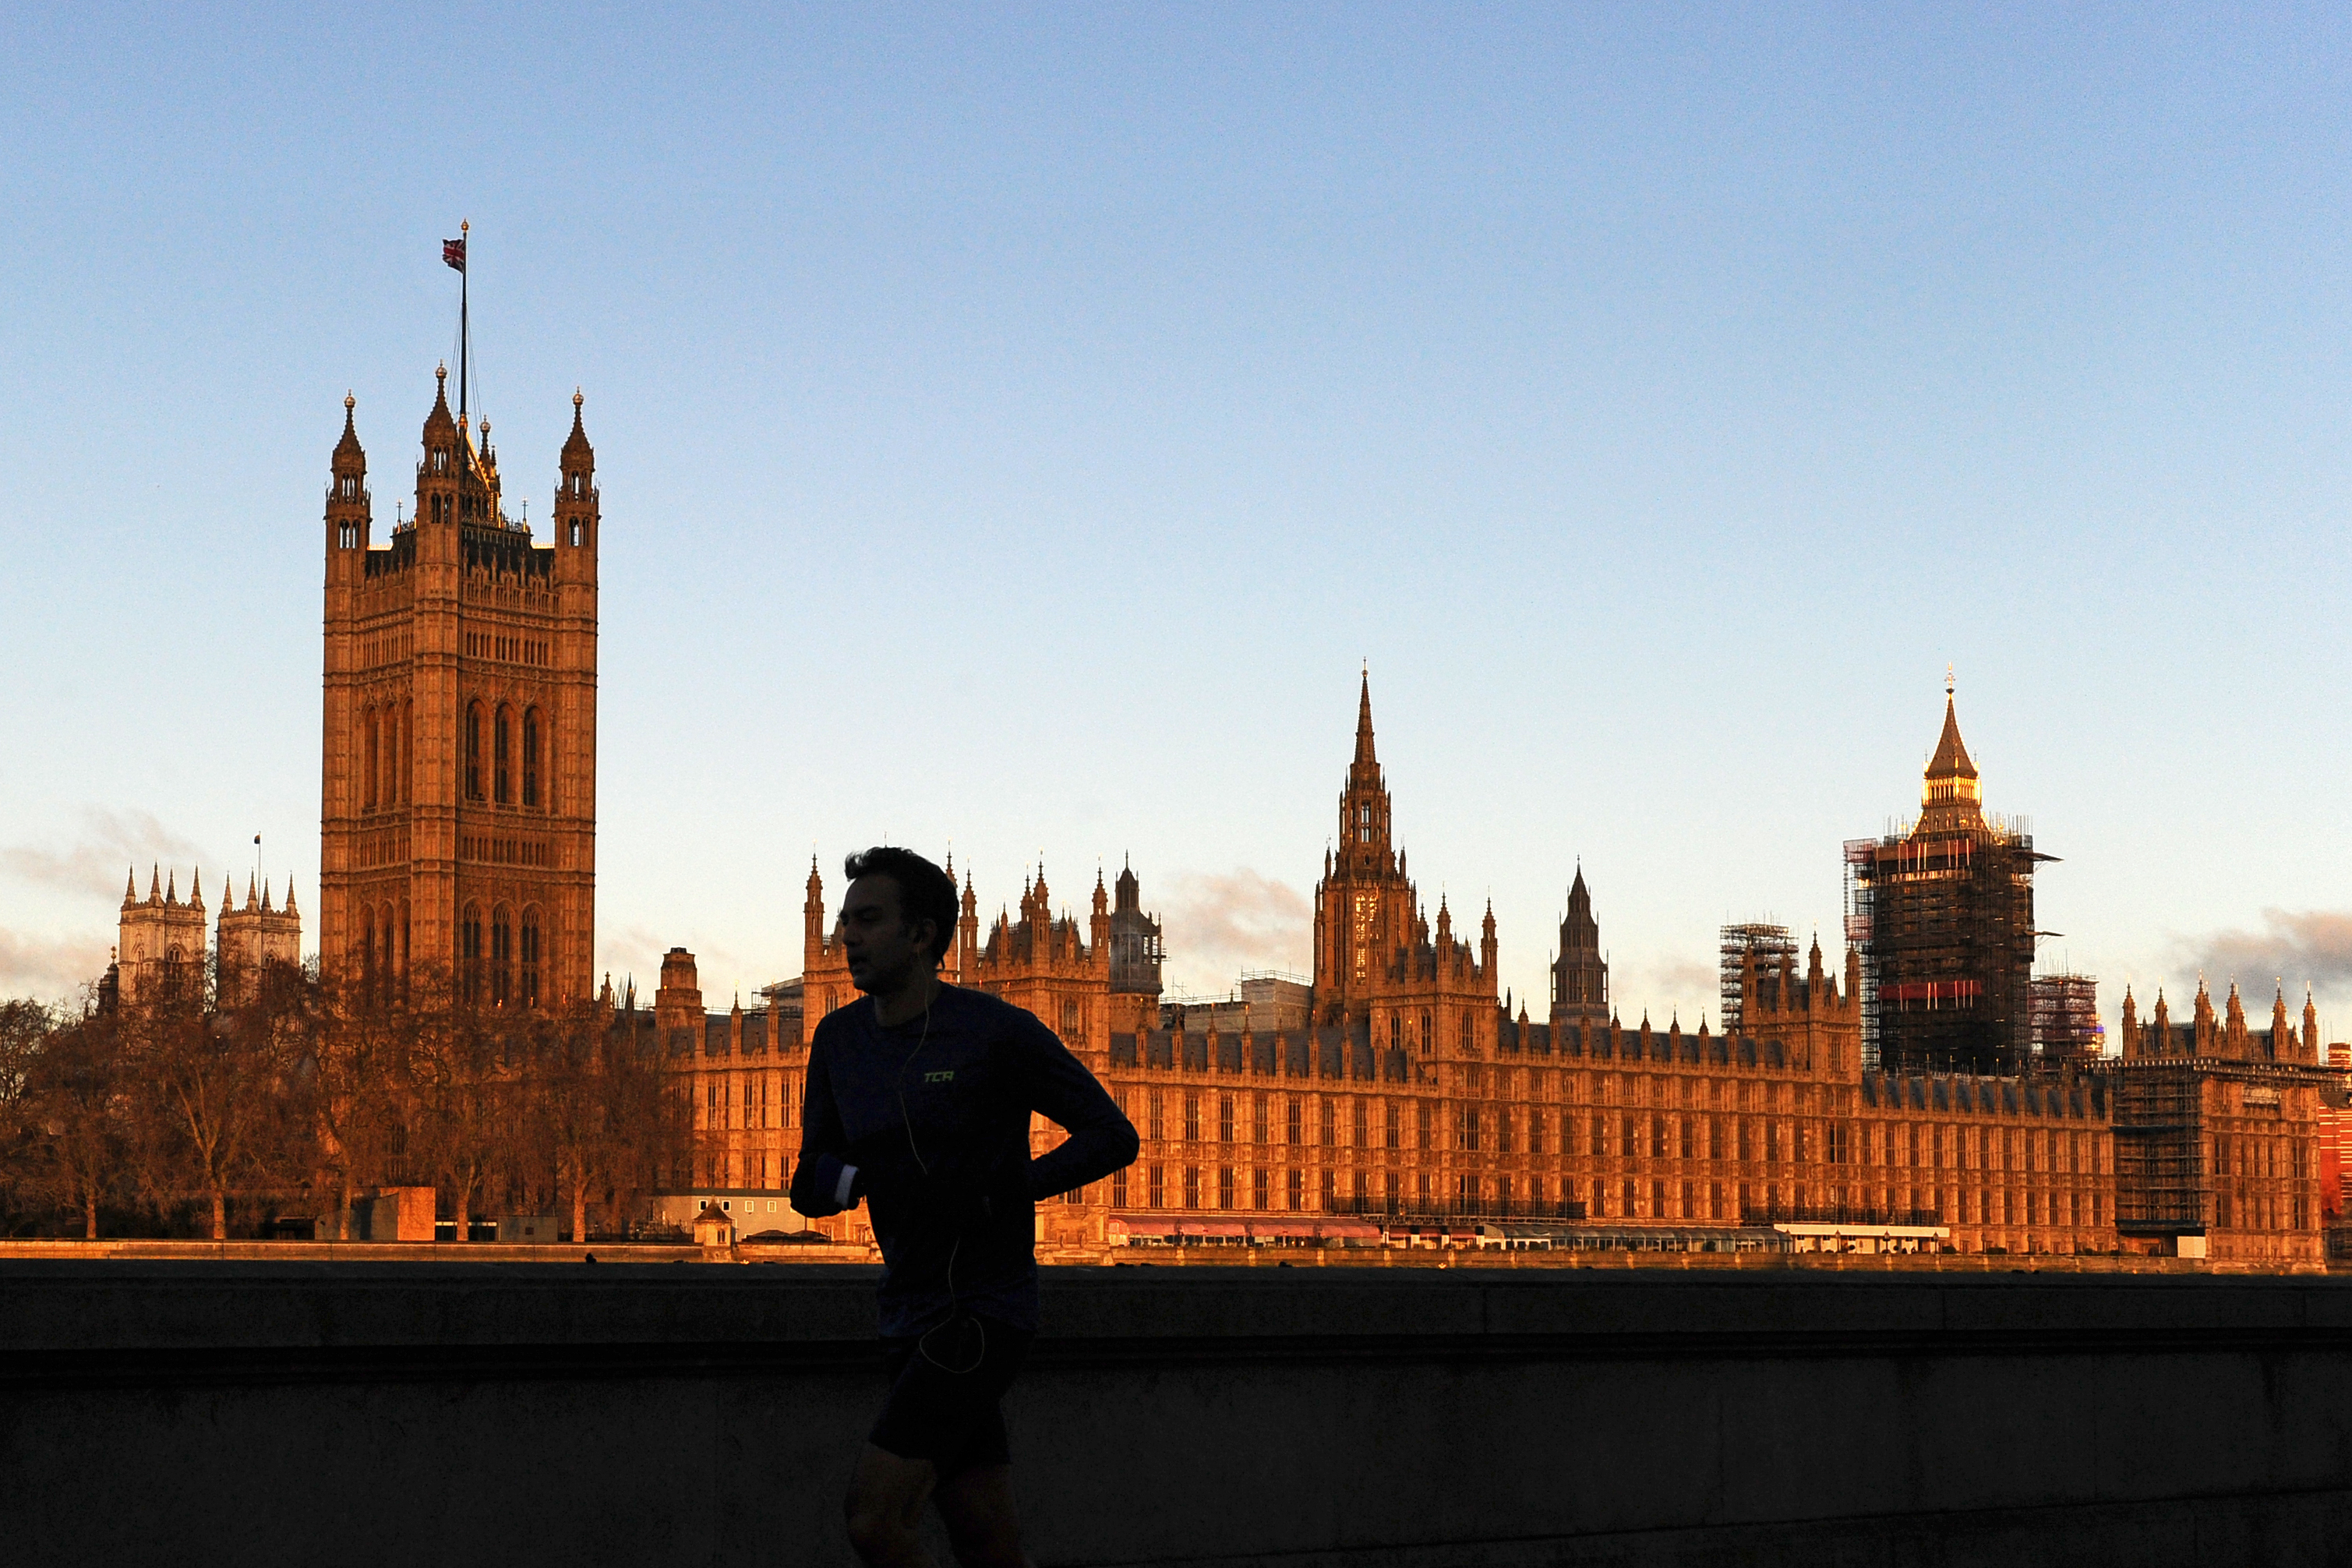 UK lawmakers expected to approve post-Brexit trade deal bill